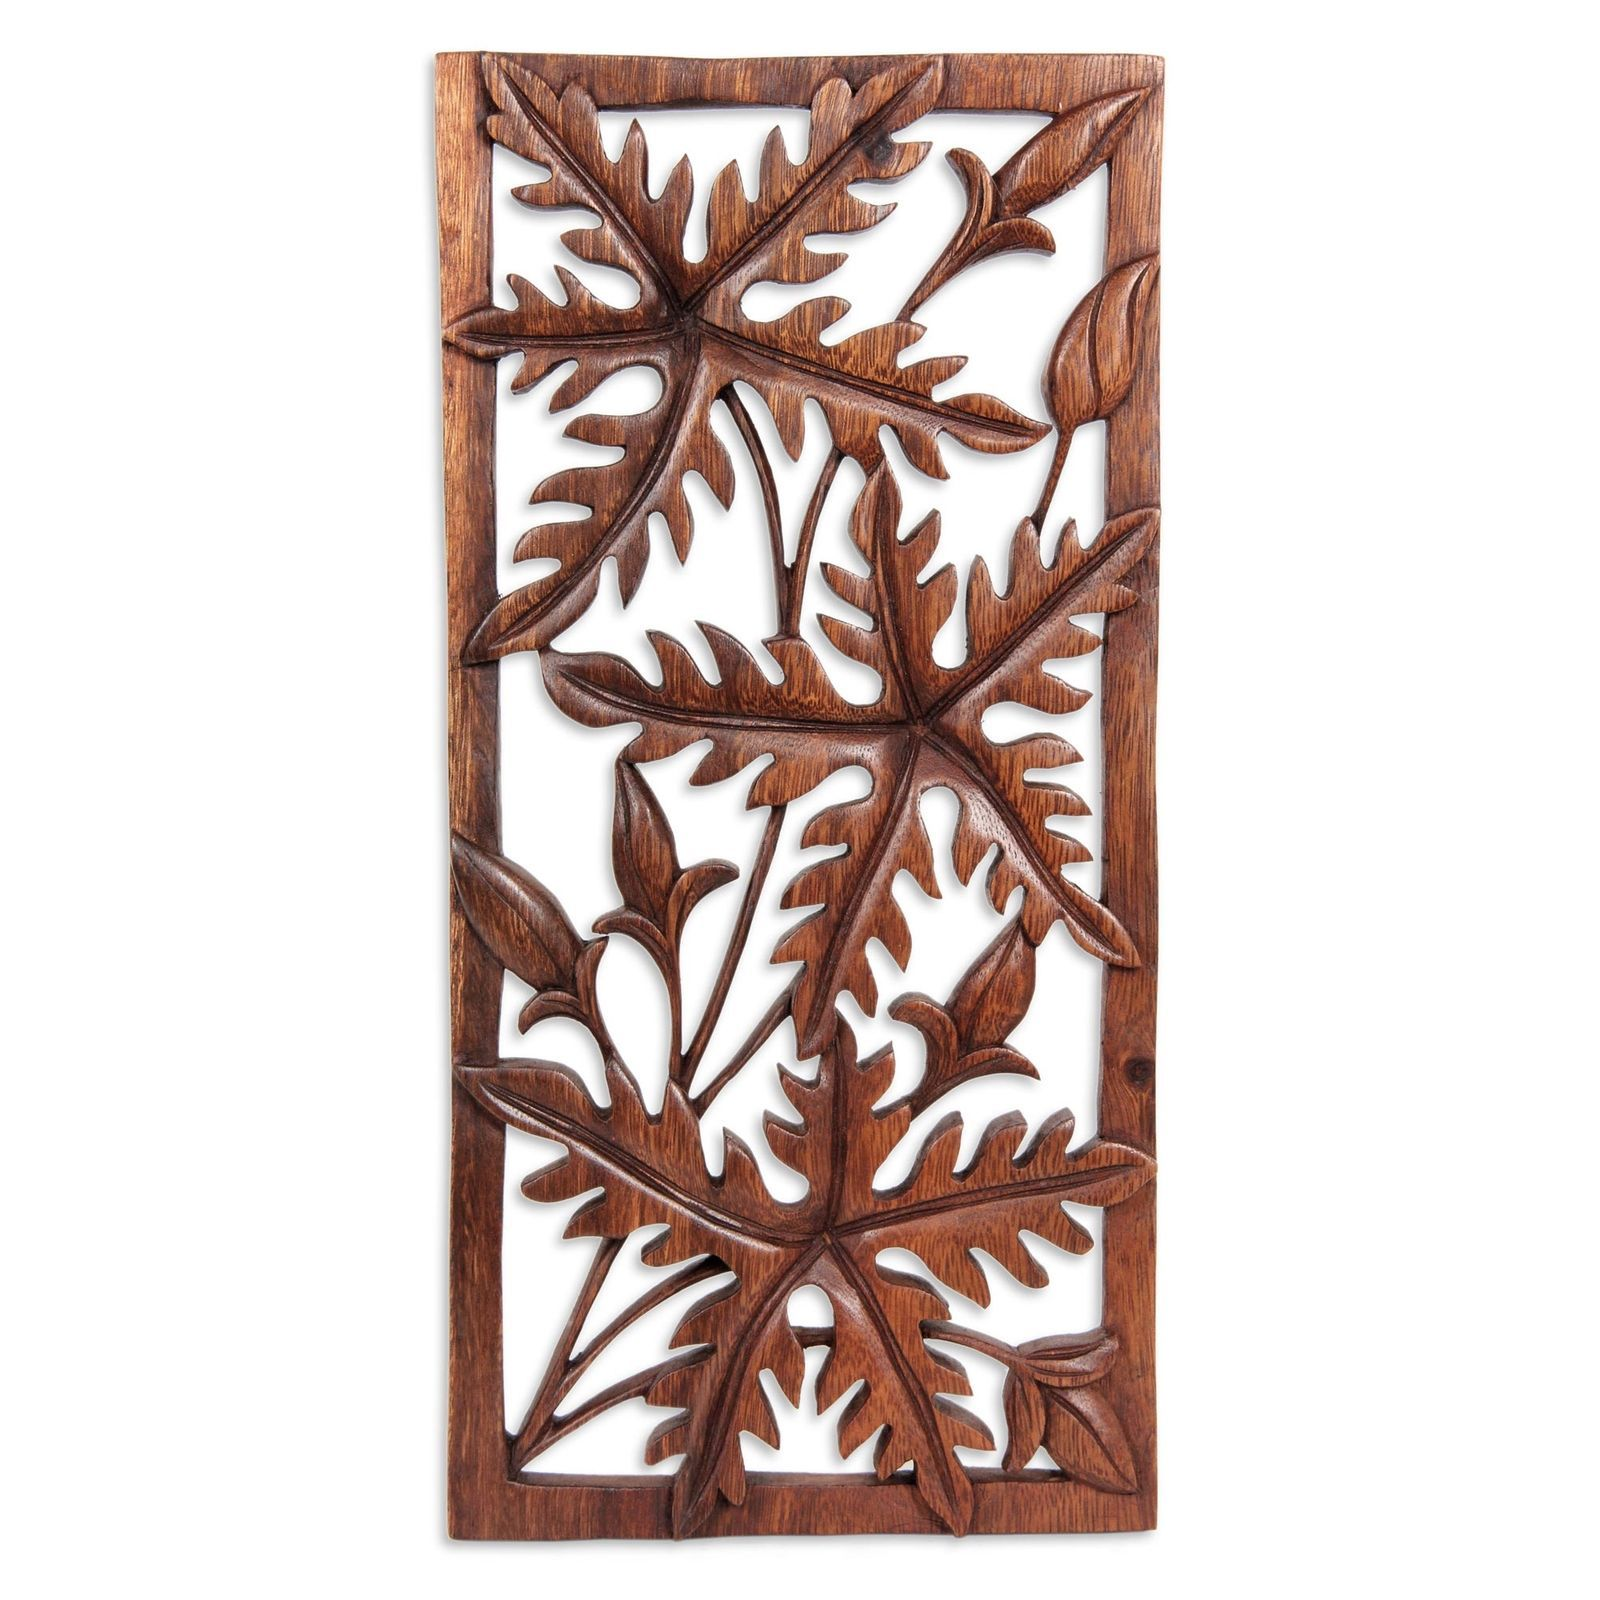 Wood relief panel hand carved wall sculpture uforest songu novica